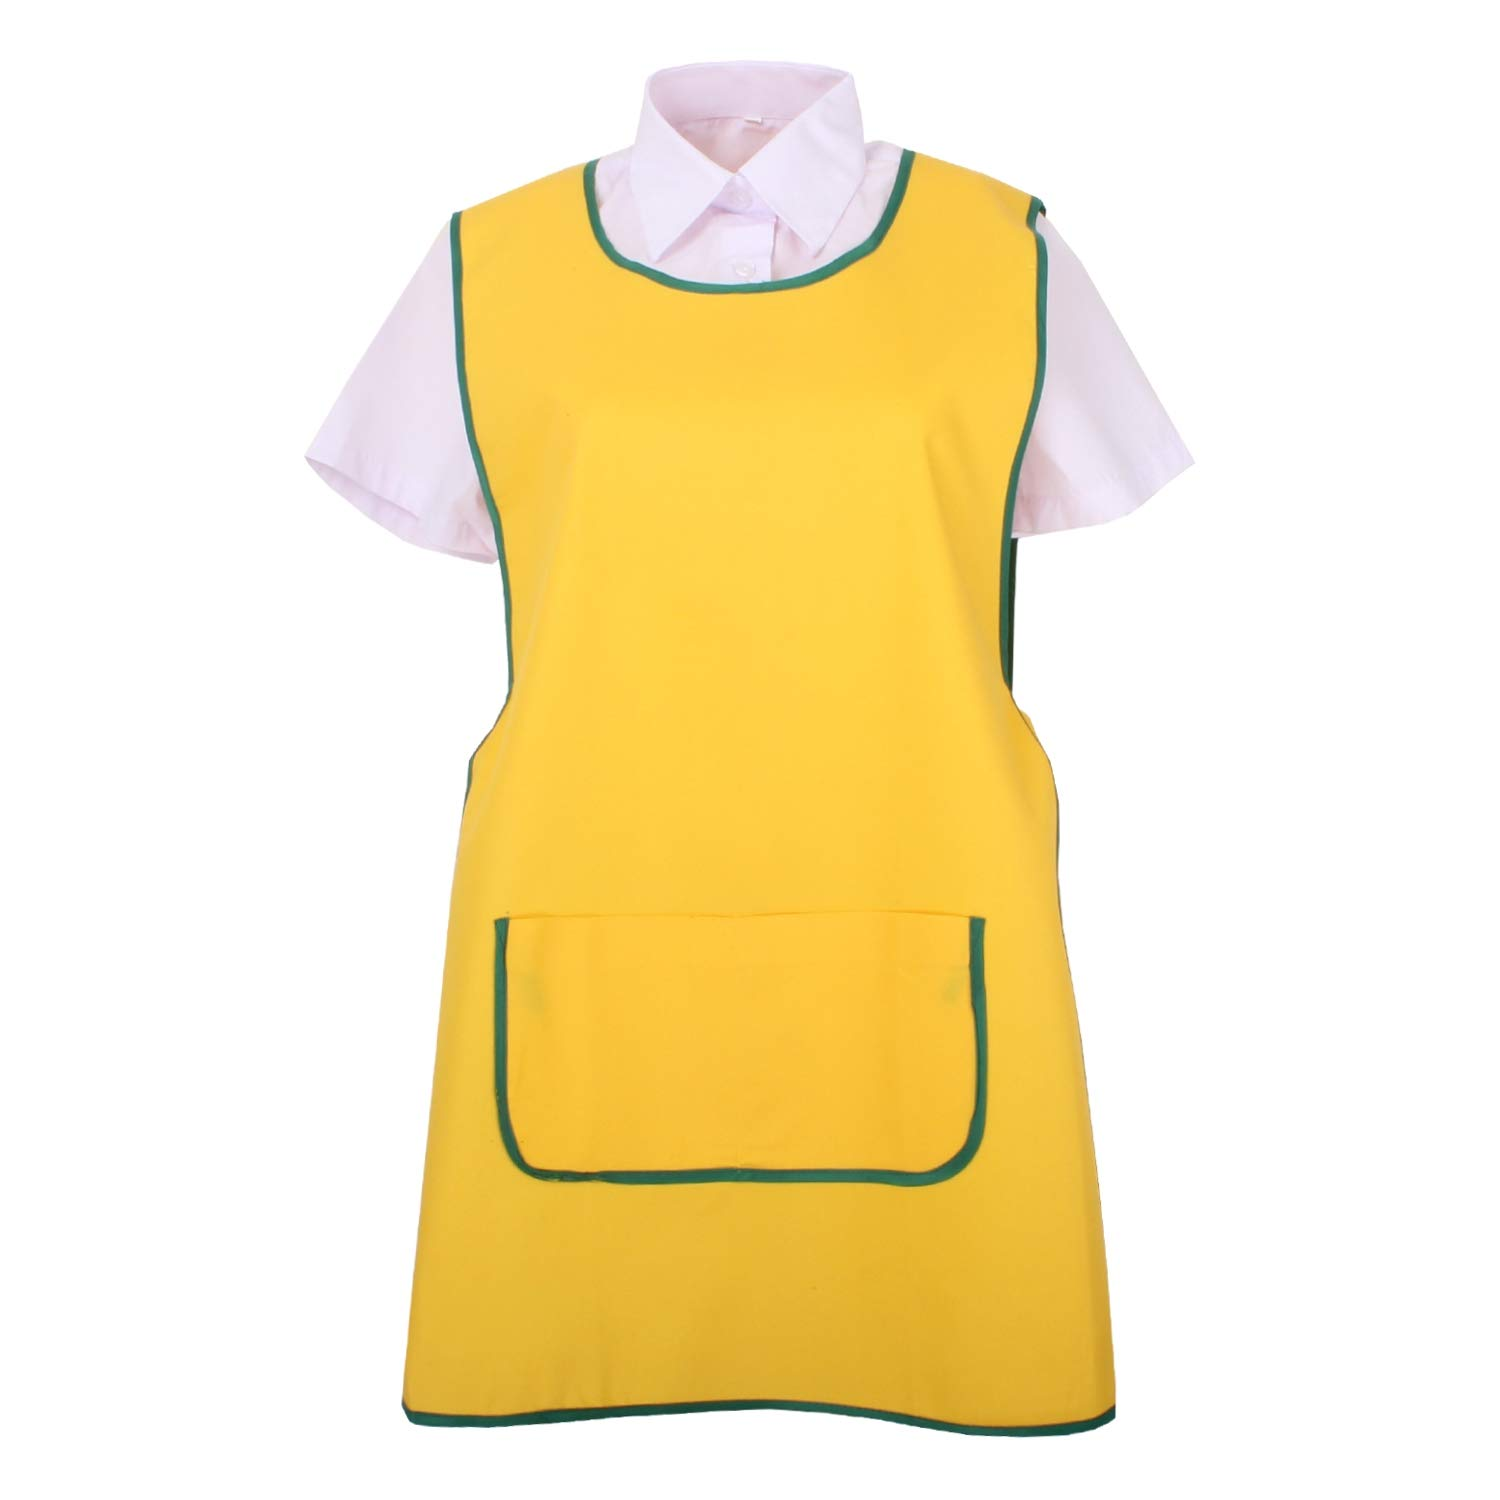 Yellow Ref.868 Large Apron Cleaning Work Uniform Clinic Hospital Cleaning Veterinary Sanitation Hostelry MISEMIYA